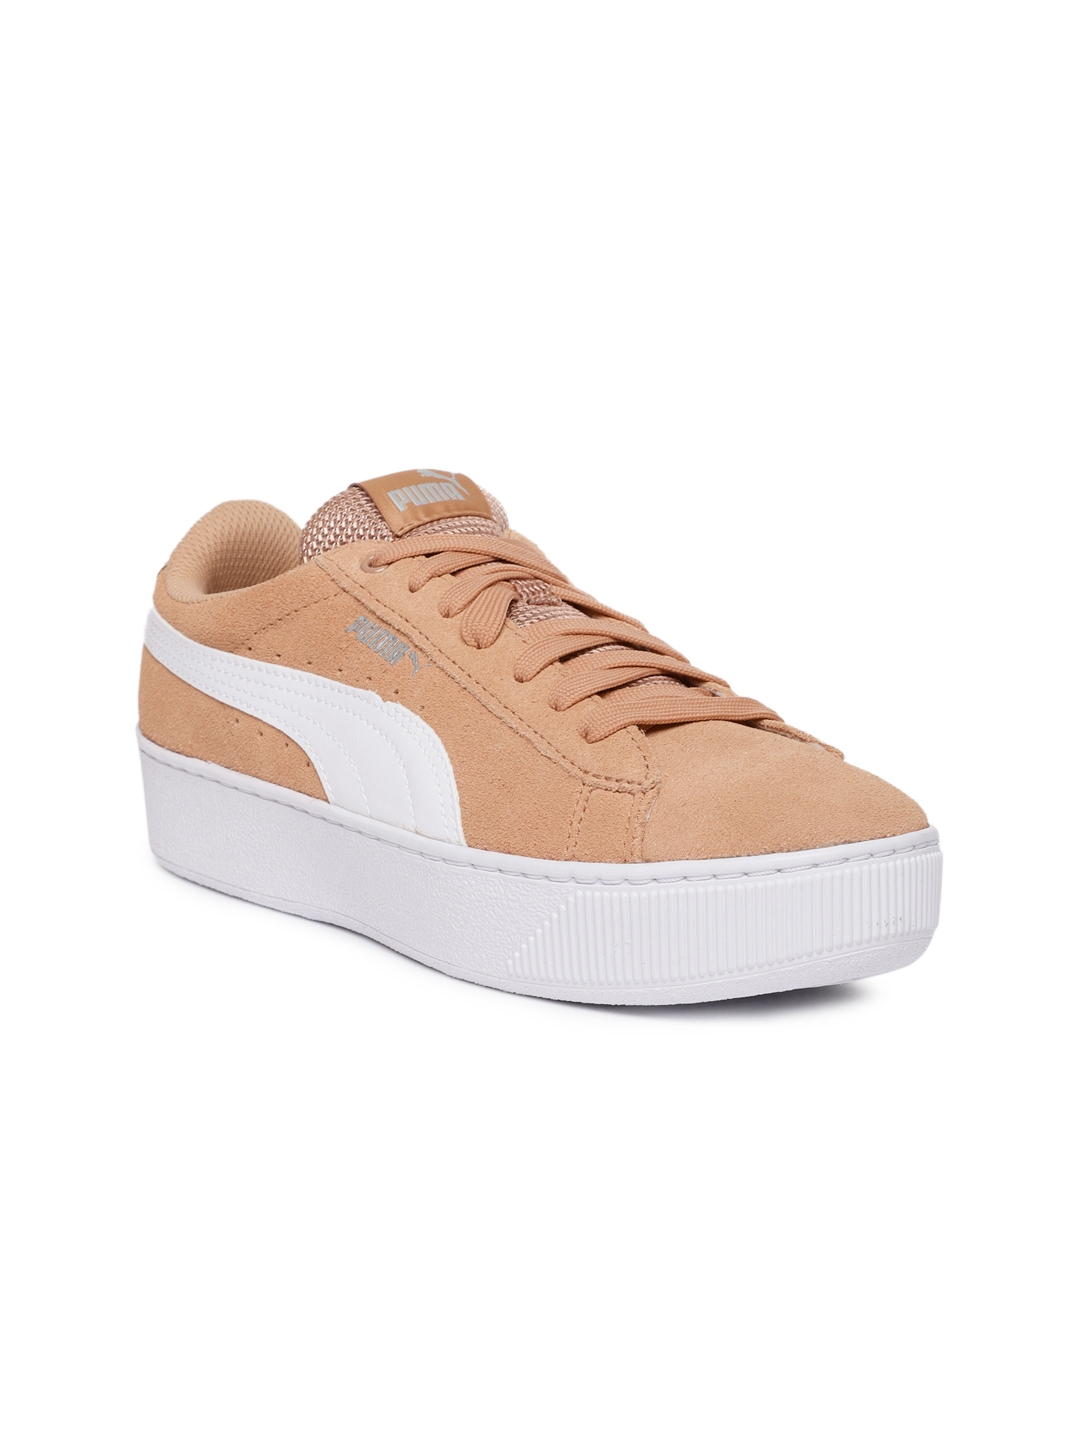 b1ac9f6c4462 Buy Puma Women Peach Coloured Vikky Platform Suede Sneakers - Casual ...